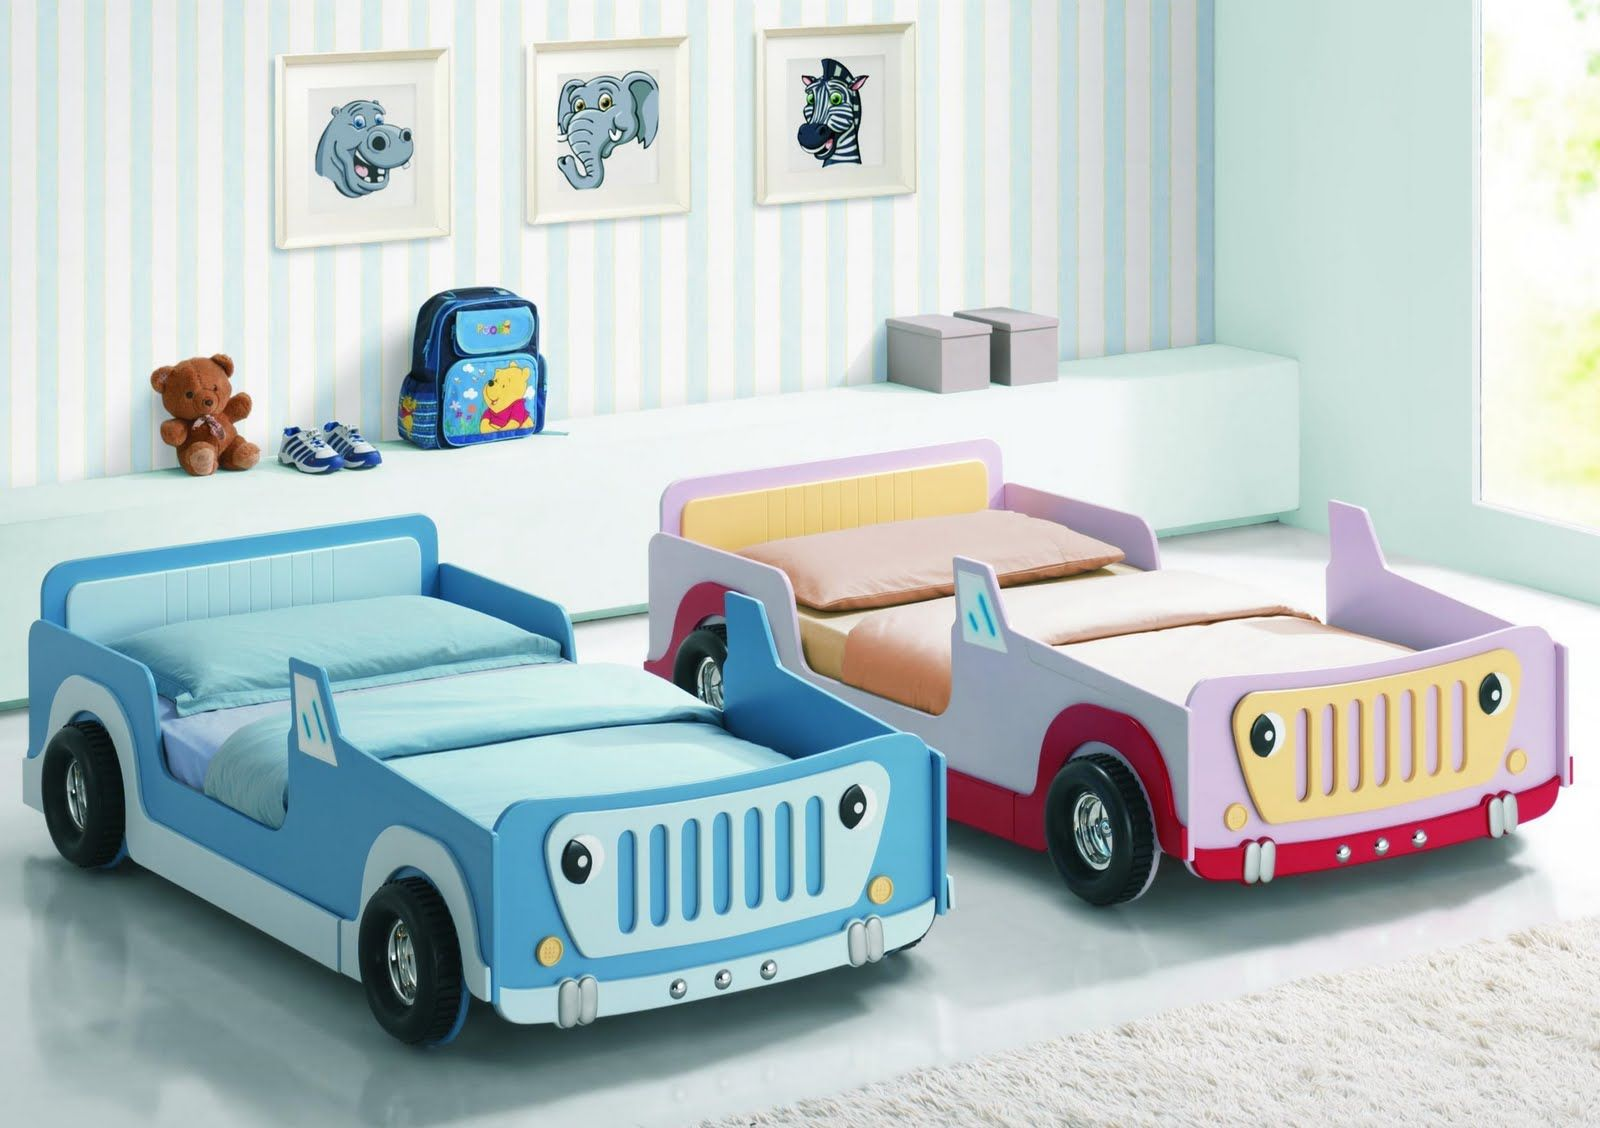 Baby jeep bed - 17 Best Images About Bed Design On Pinterest Twin Comforter Sets Sport Atv And Safari Room